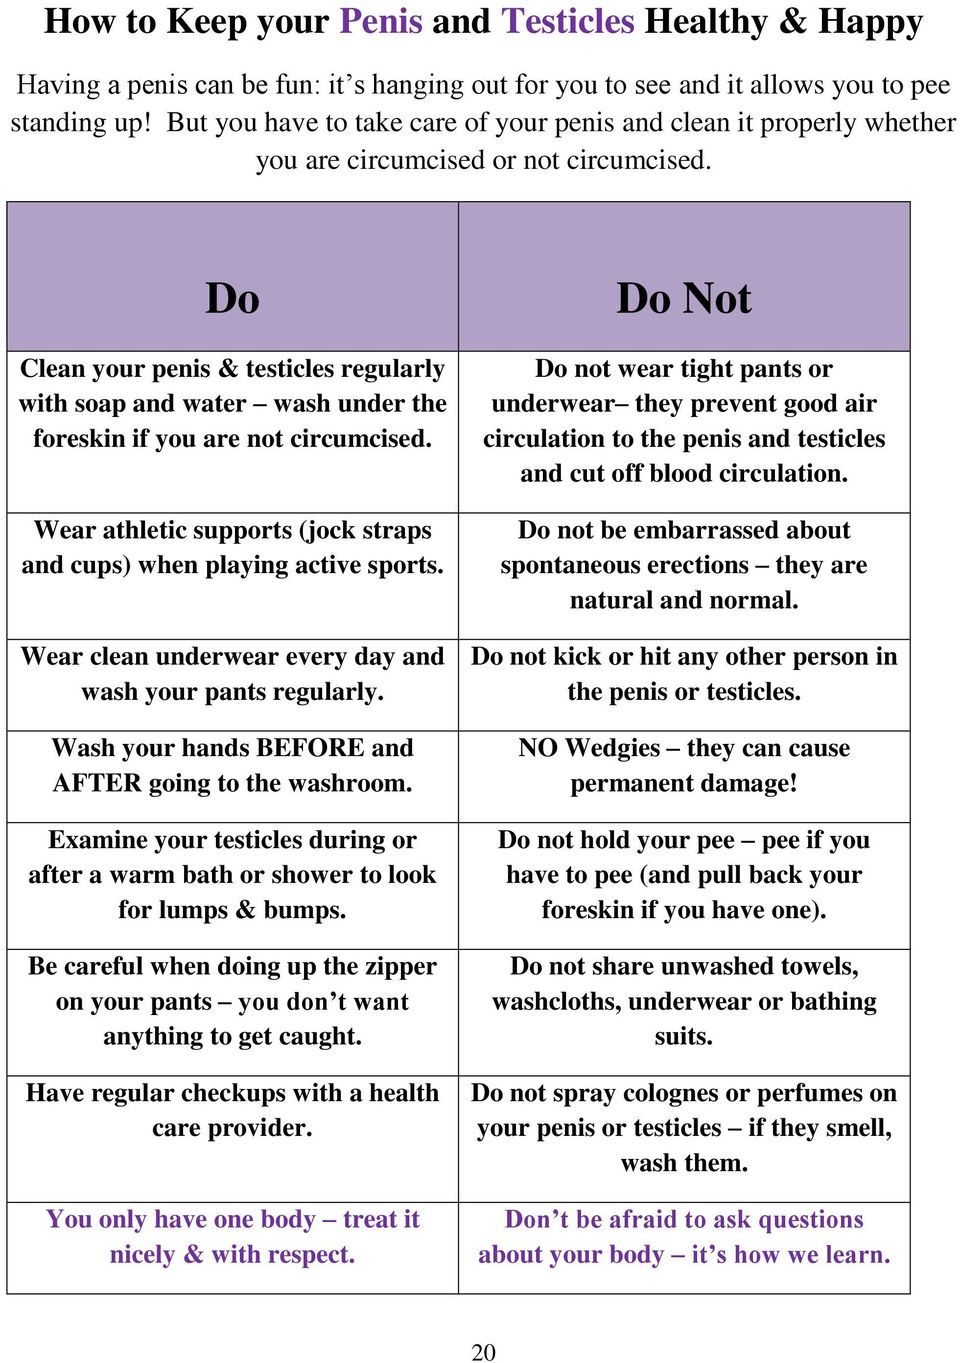 Do Clean your penis & testicles regularly with soap and water wash under the foreskin if you are not circumcised. Wear athletic supports (jock straps and cups) when playing active sports.